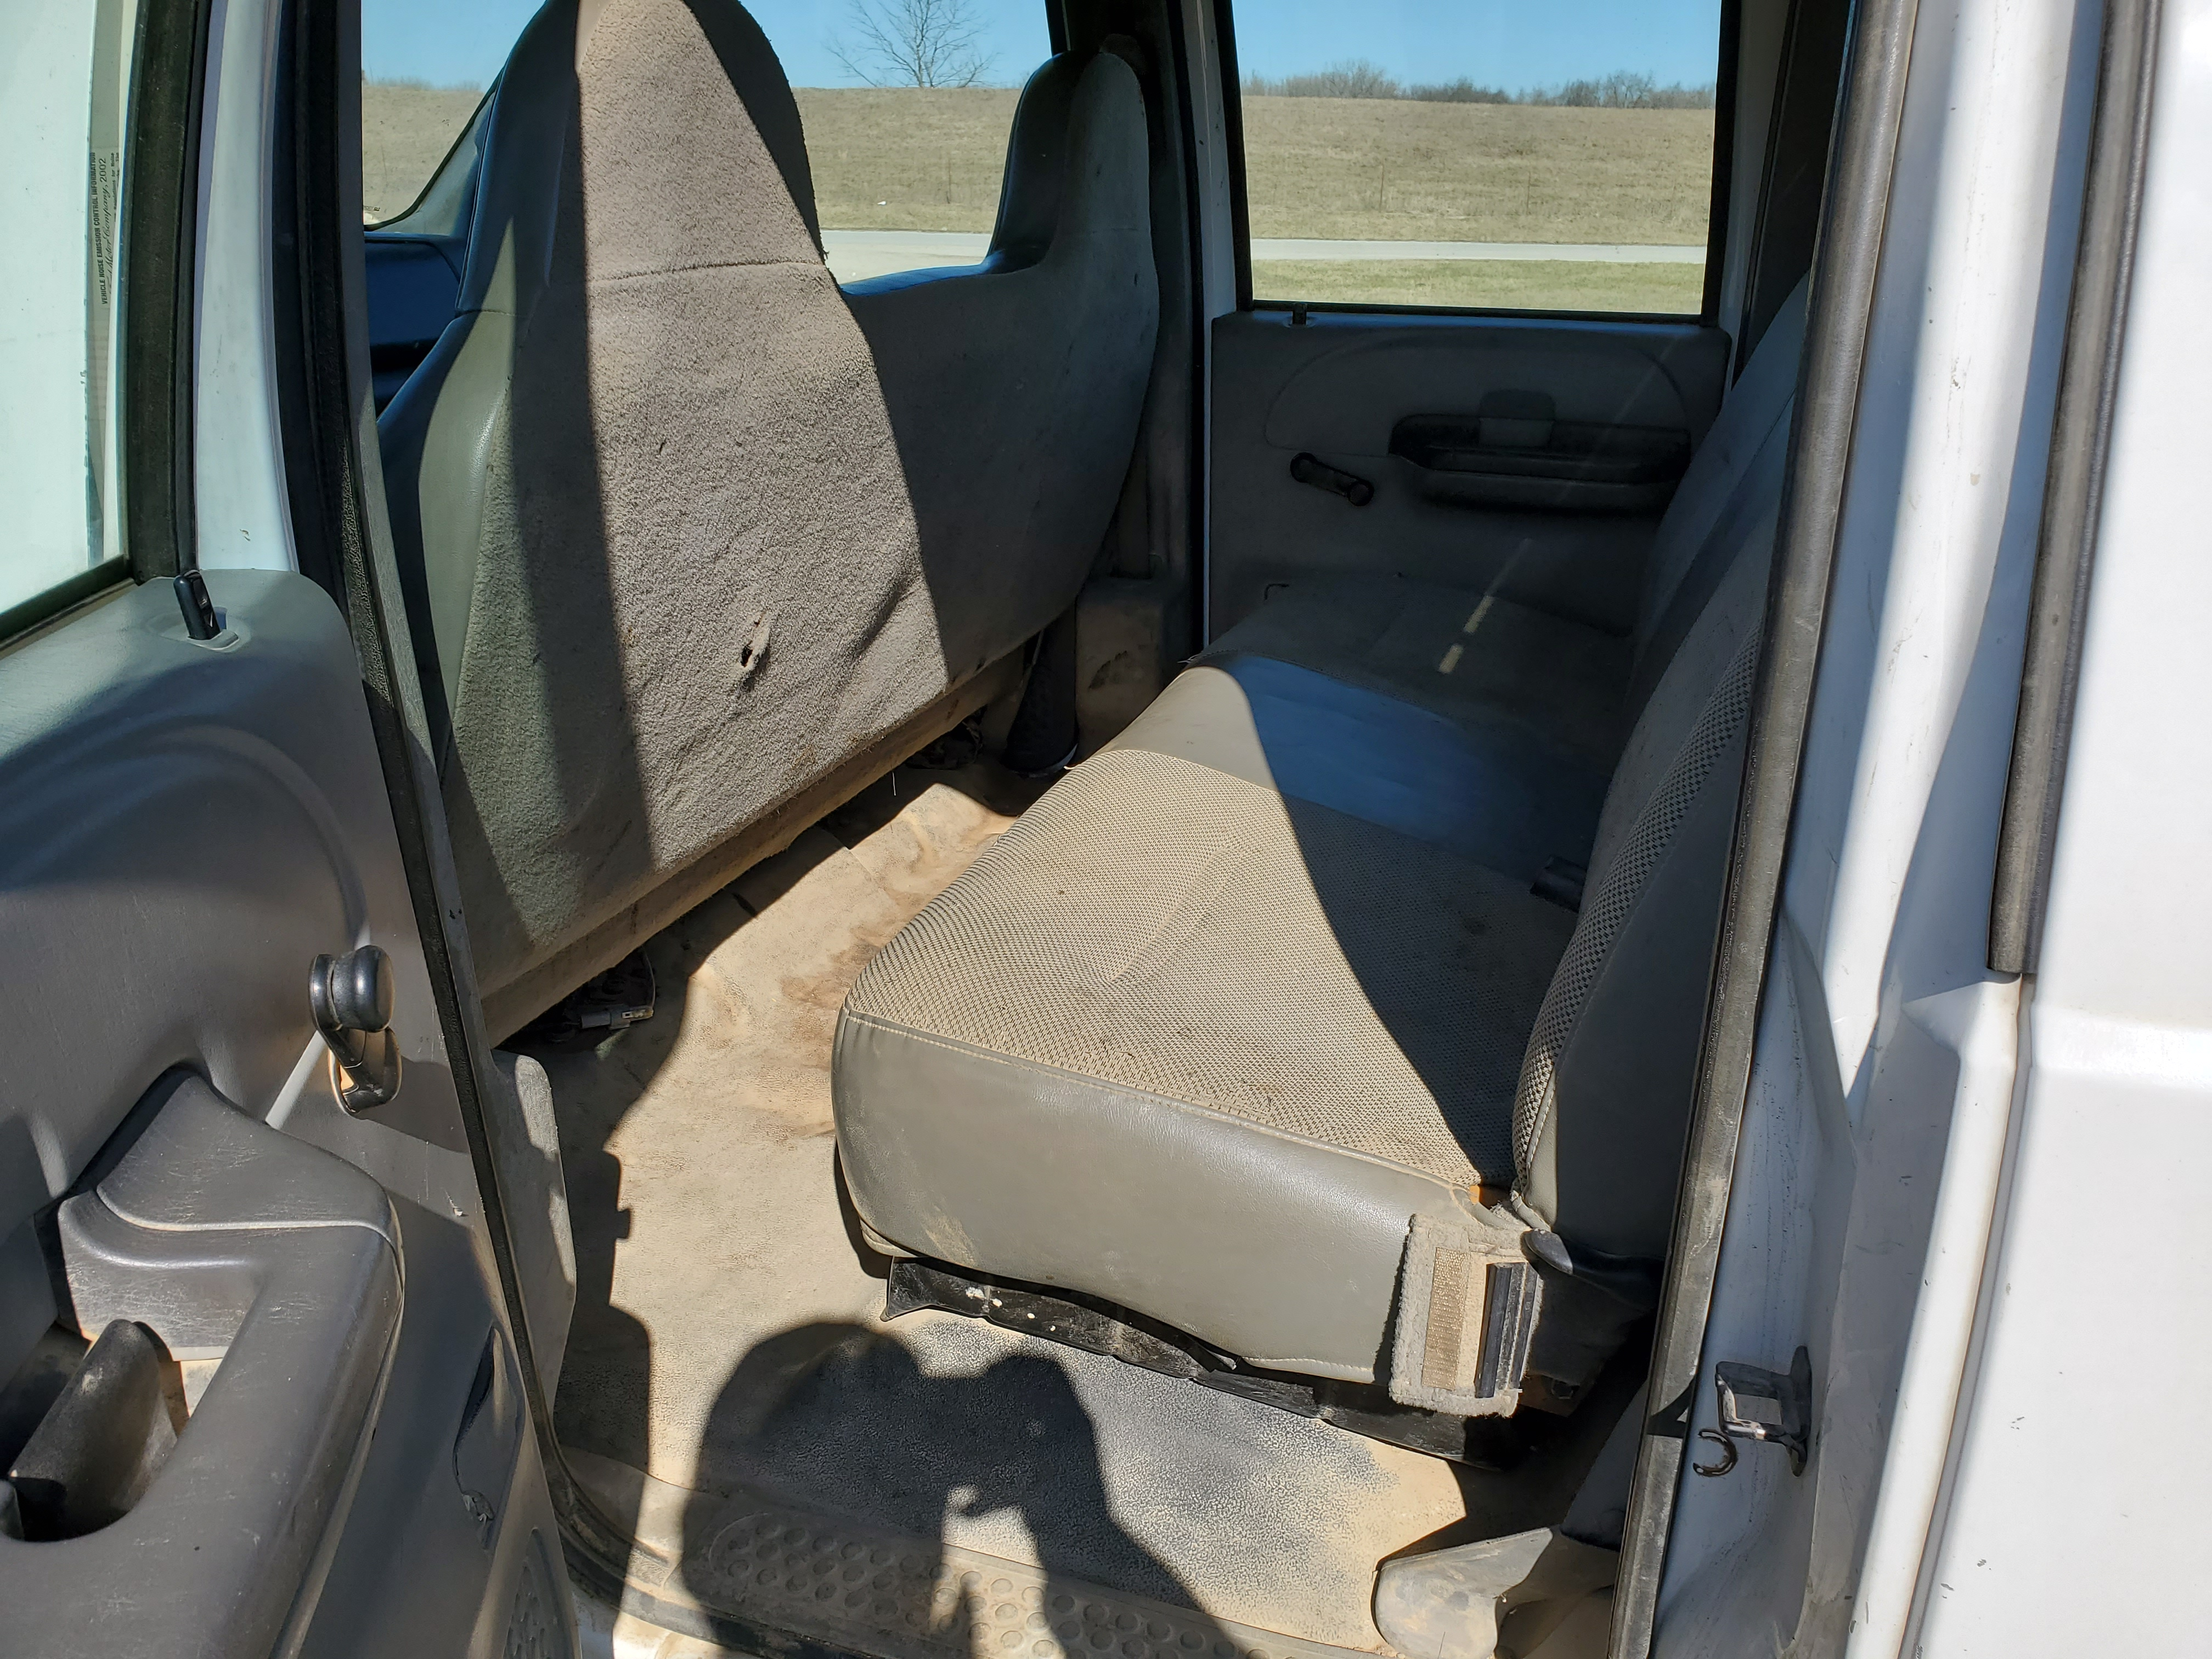 2003 F550 Ford Super Duty Pickup, Automatic, 7.3 Power Stroke Diesel, 8' Foot Omaha Flatbed - Image 10 of 18